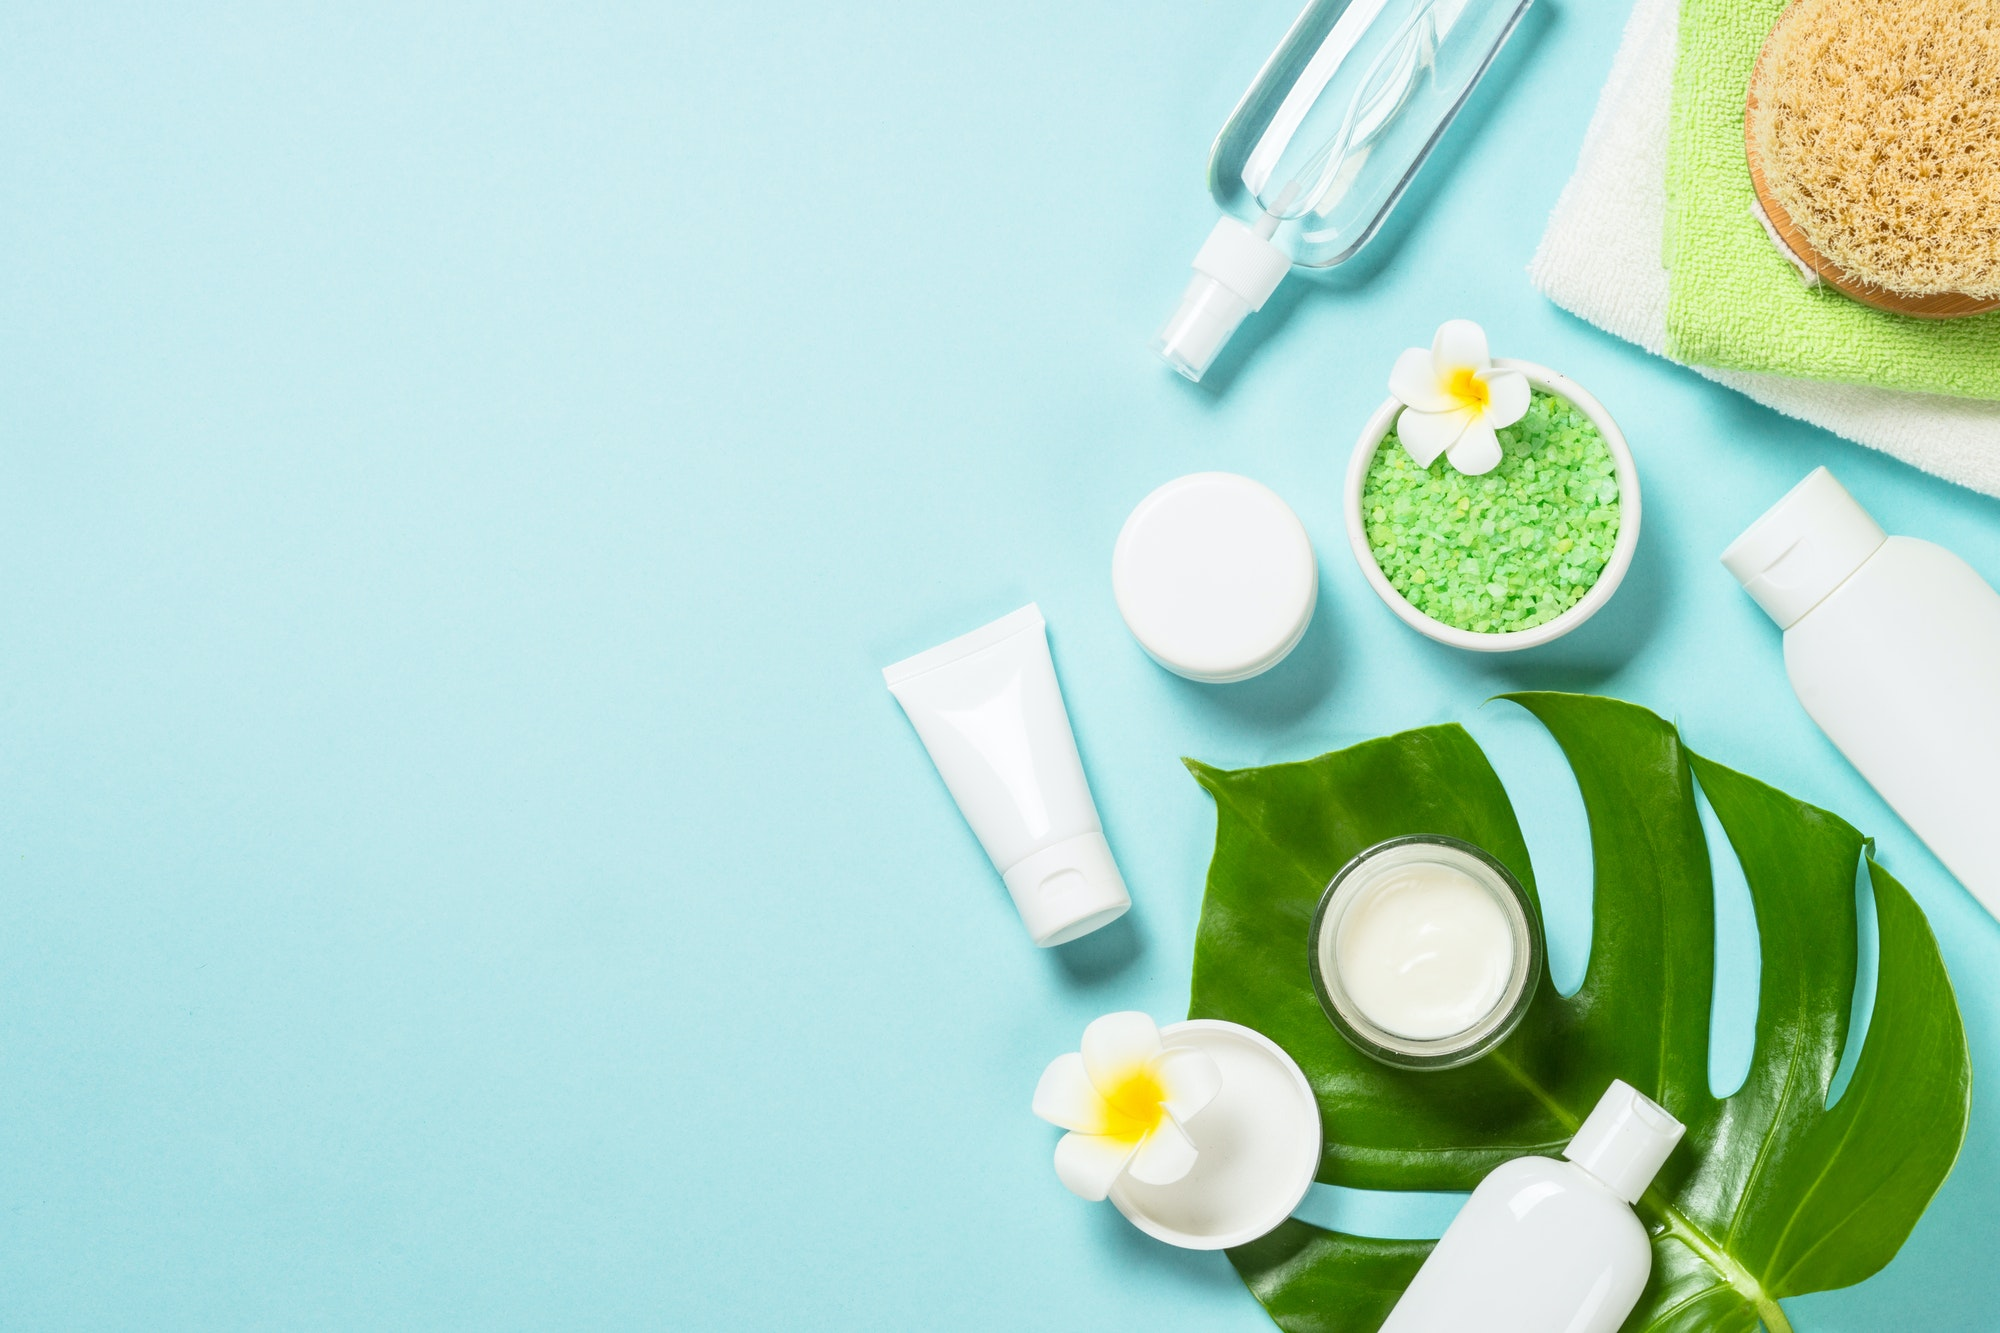 Spa background at blue, flat lay.